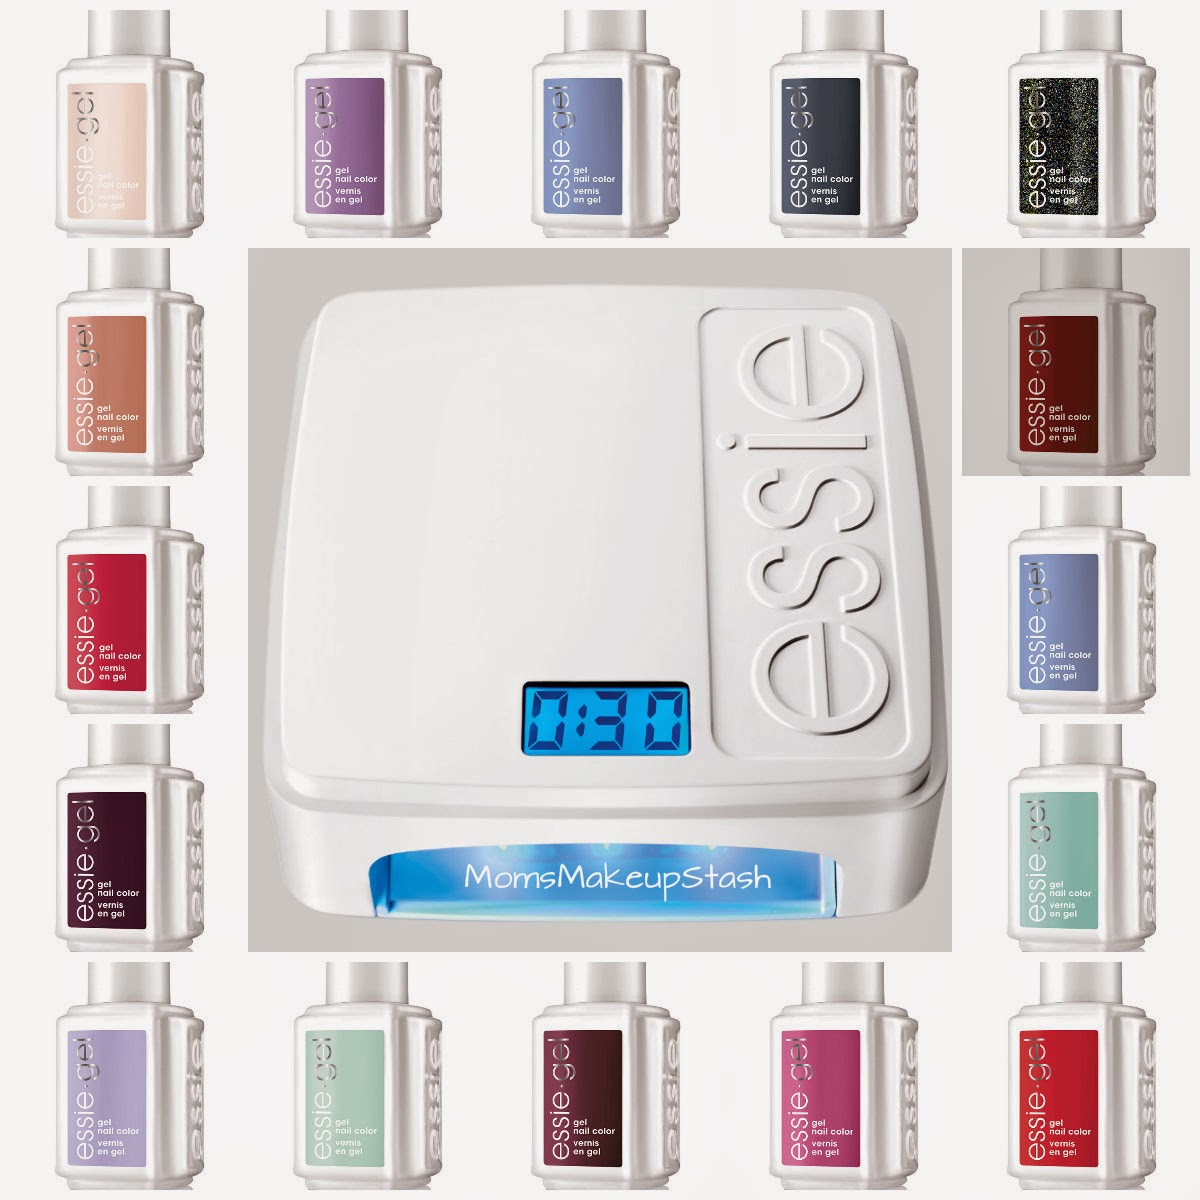 The Future of Colour? Essie Introduces 2-in-1 Color & Care ...